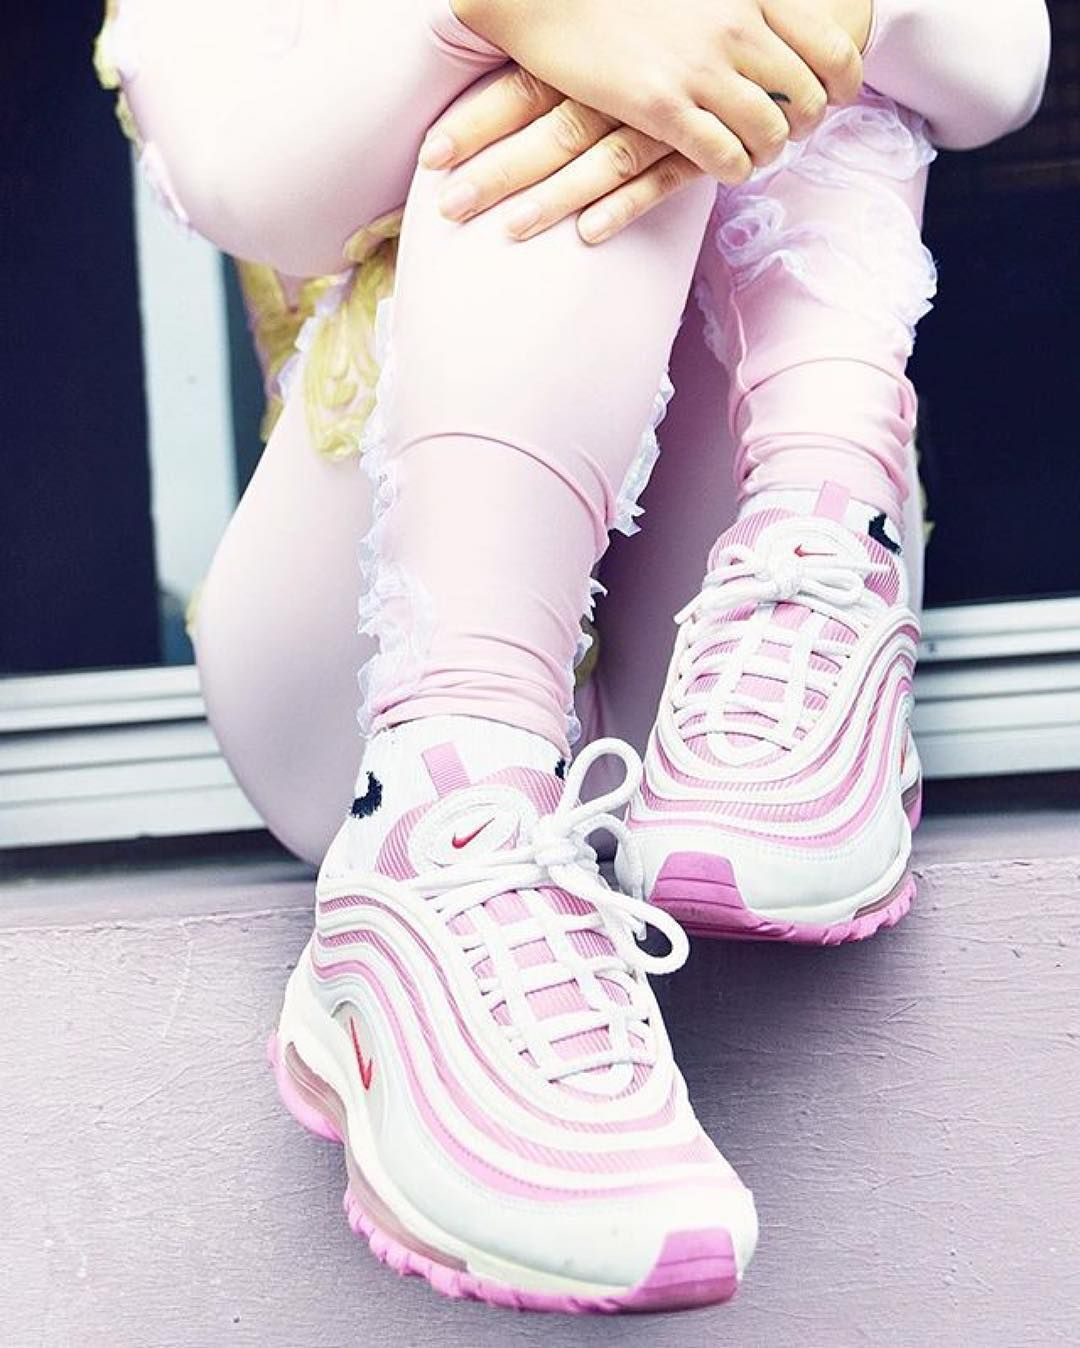 247485e57ed Sneakers women - Nike Air Max 97 (©malebitch)